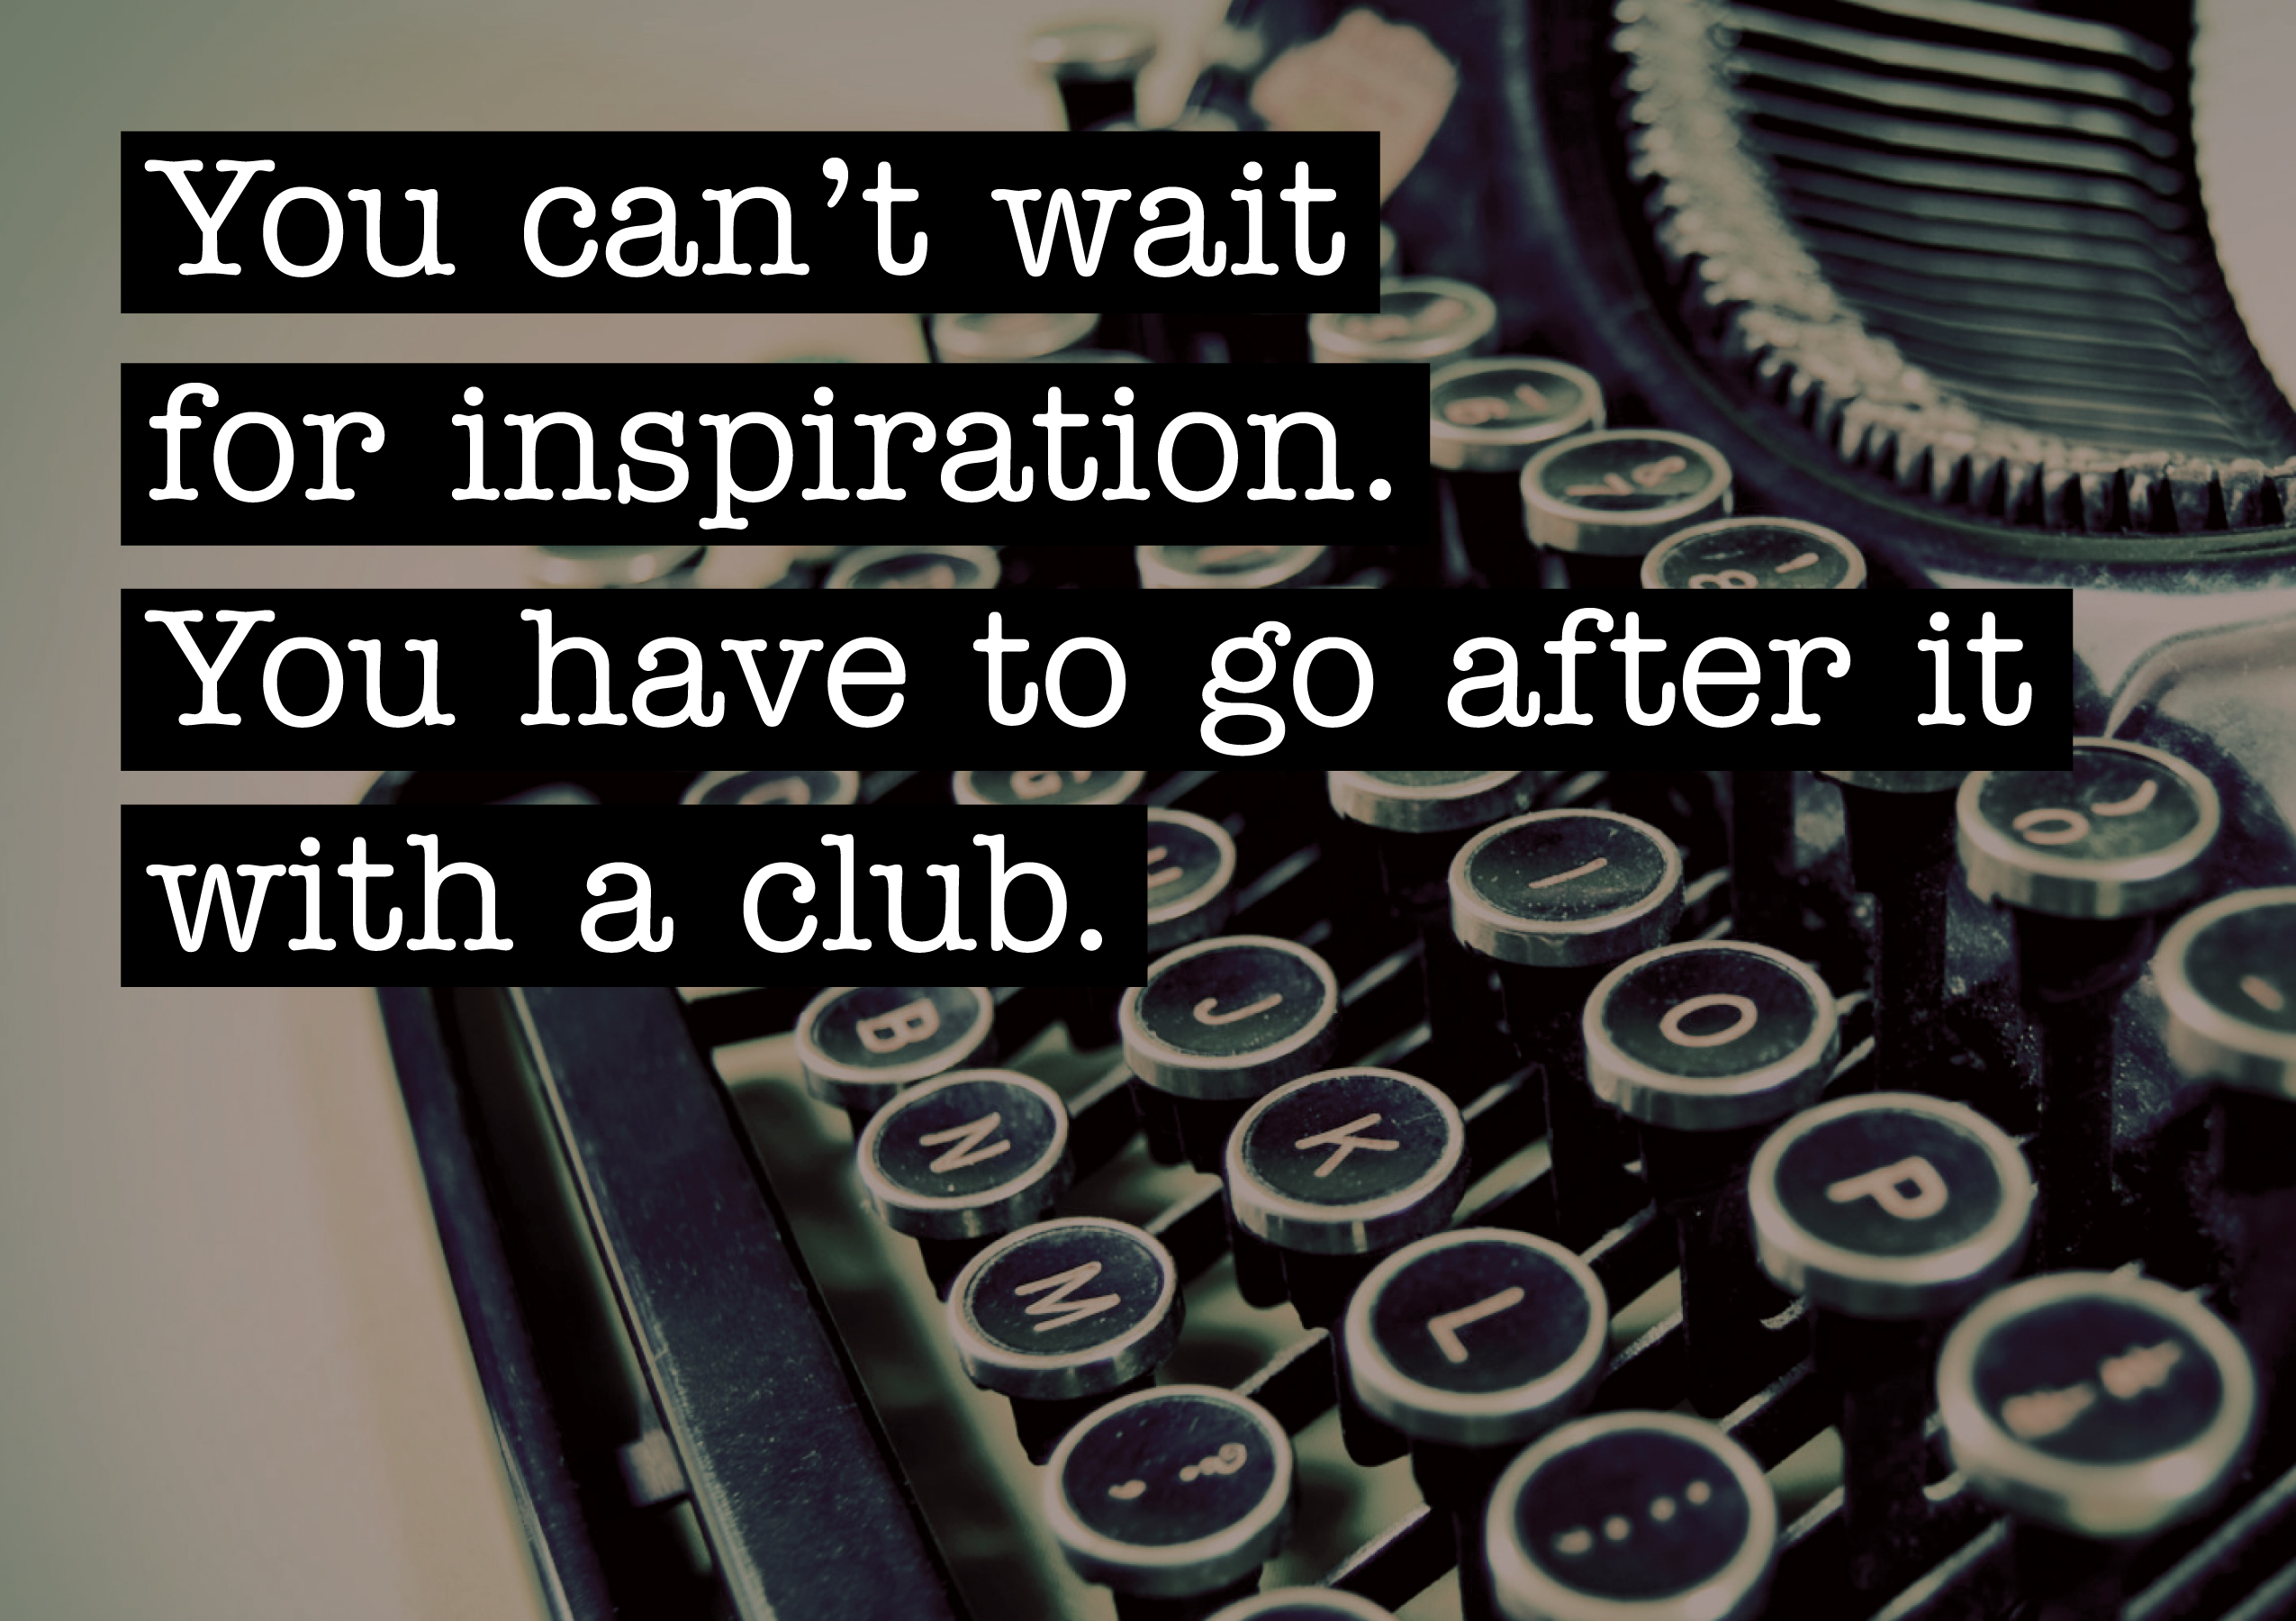 [Image] Go out there and get it!